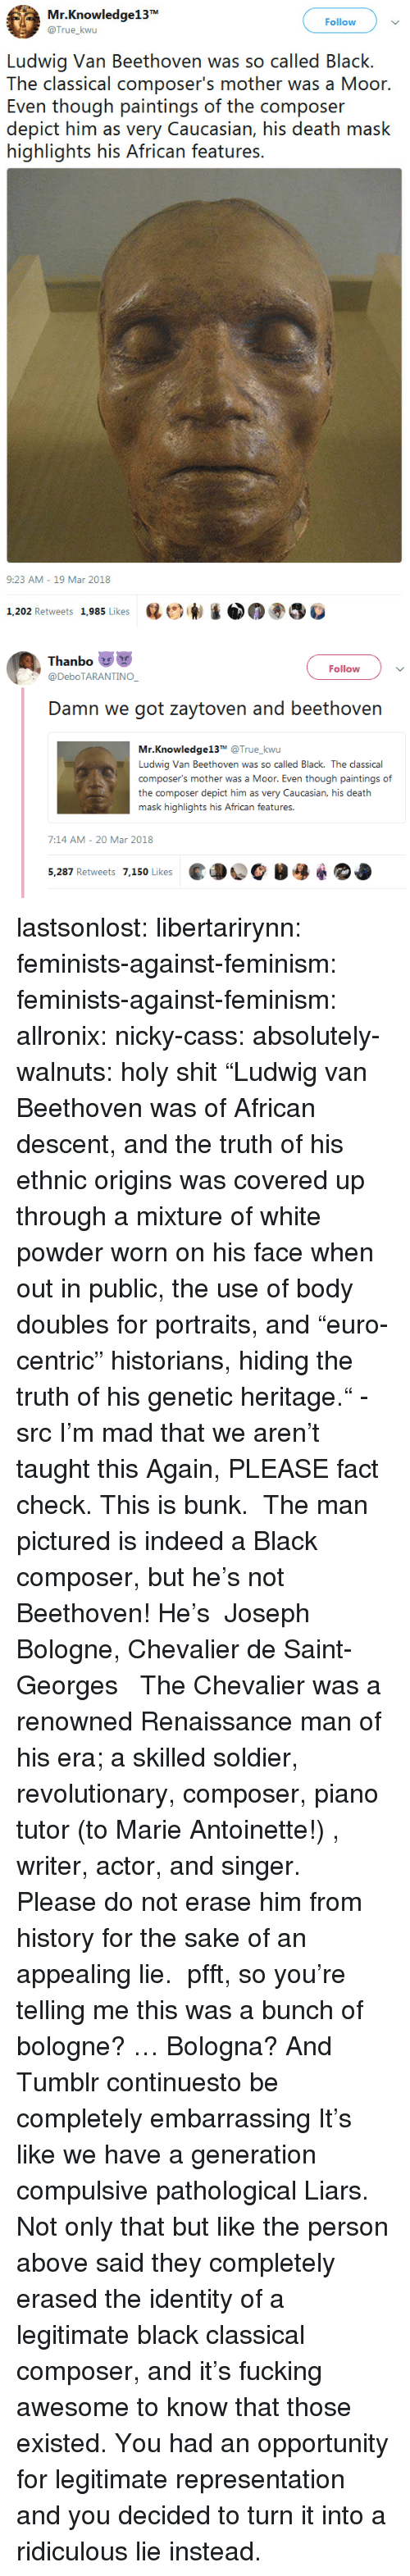 "Feminism, Fucking, and News: Mr.Knowledge13  @True_kwu  Follow  Ludwig Van Beethoven was so called Black.  The classical composer's mother was a Moor  Even though paintings of the composer  depict him as very Caucasian, his death mask  highlights his African features.  9:23 AM-19 Mar 2018  1,202 Retweets 1,985 Likes  砝ビ)  ③巻   Thanbo  @DeboTARANTINO  Follow  Damn we got zaytoven and beethovern  Mr.Knowledge13T @True_kwu  Ludwig Van Beethoven was so called Black. The classical  composer's mother was a Moor. Even though paintings of  the composer depict him as very Caucasian, his death  .む  7:14 AM- 20 Mar 2018  ed OC  5,287 Retweets 7,150 Likes lastsonlost:  libertarirynn:  feminists-against-feminism:  feminists-against-feminism: allronix:  nicky-cass:  absolutely-walnuts:  holy shit ""Ludwig van Beethoven was of African descent, and the truth of his ethnic origins was covered up through a mixture of white powder worn on his face when out in public, the use of body doubles for portraits, and ""euro-centric"" historians, hiding the truth of his genetic heritage."" - src   I'm mad that we aren't taught this  Again, PLEASE fact check. This is bunk.  The man pictured is indeed a Black composer, but he's not Beethoven! He's   Joseph Bologne, Chevalier de Saint-Georges    The Chevalier was a renowned Renaissance man of his era; a skilled soldier, revolutionary, composer, piano tutor (to Marie Antoinette!) , writer, actor, and singer.  Please do not erase him from history for the sake of an appealing lie.   pfft, so you're telling me this was a bunch of bologne?  … Bologna?  And Tumblr continuesto be completely embarrassing  It's like we have a generation compulsive pathological Liars.  Not only that but like the person above said they completely erased the identity of a legitimate black classical composer, and it's fucking awesome to know that those existed. You had an opportunity for legitimate representation and you decided to turn it into a ridiculous lie instead."